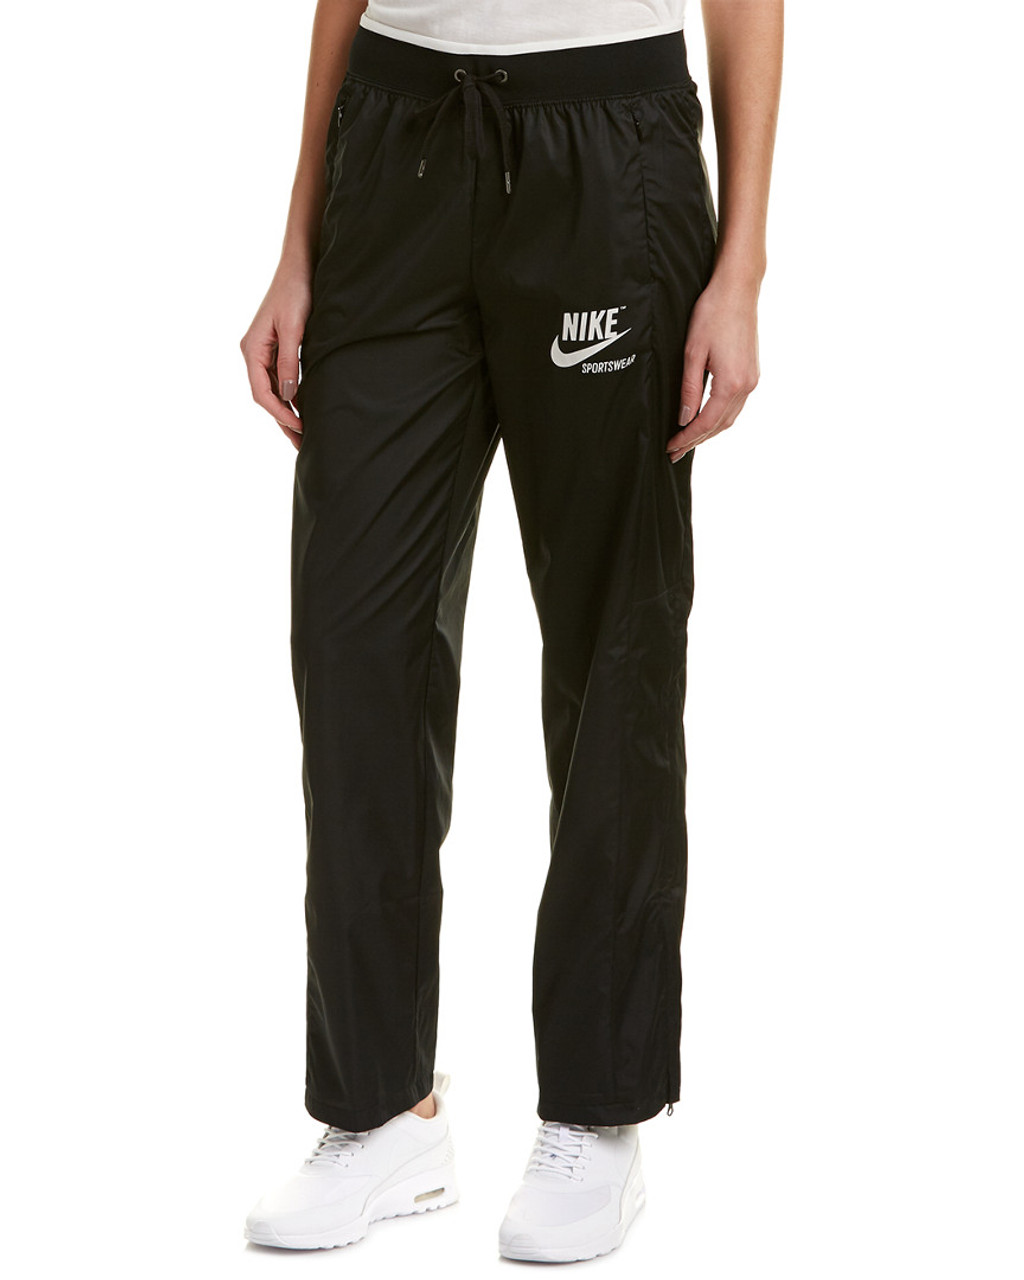 in stock low price sale better price for Nike Sportswear Archive Zip Pant~1450601124